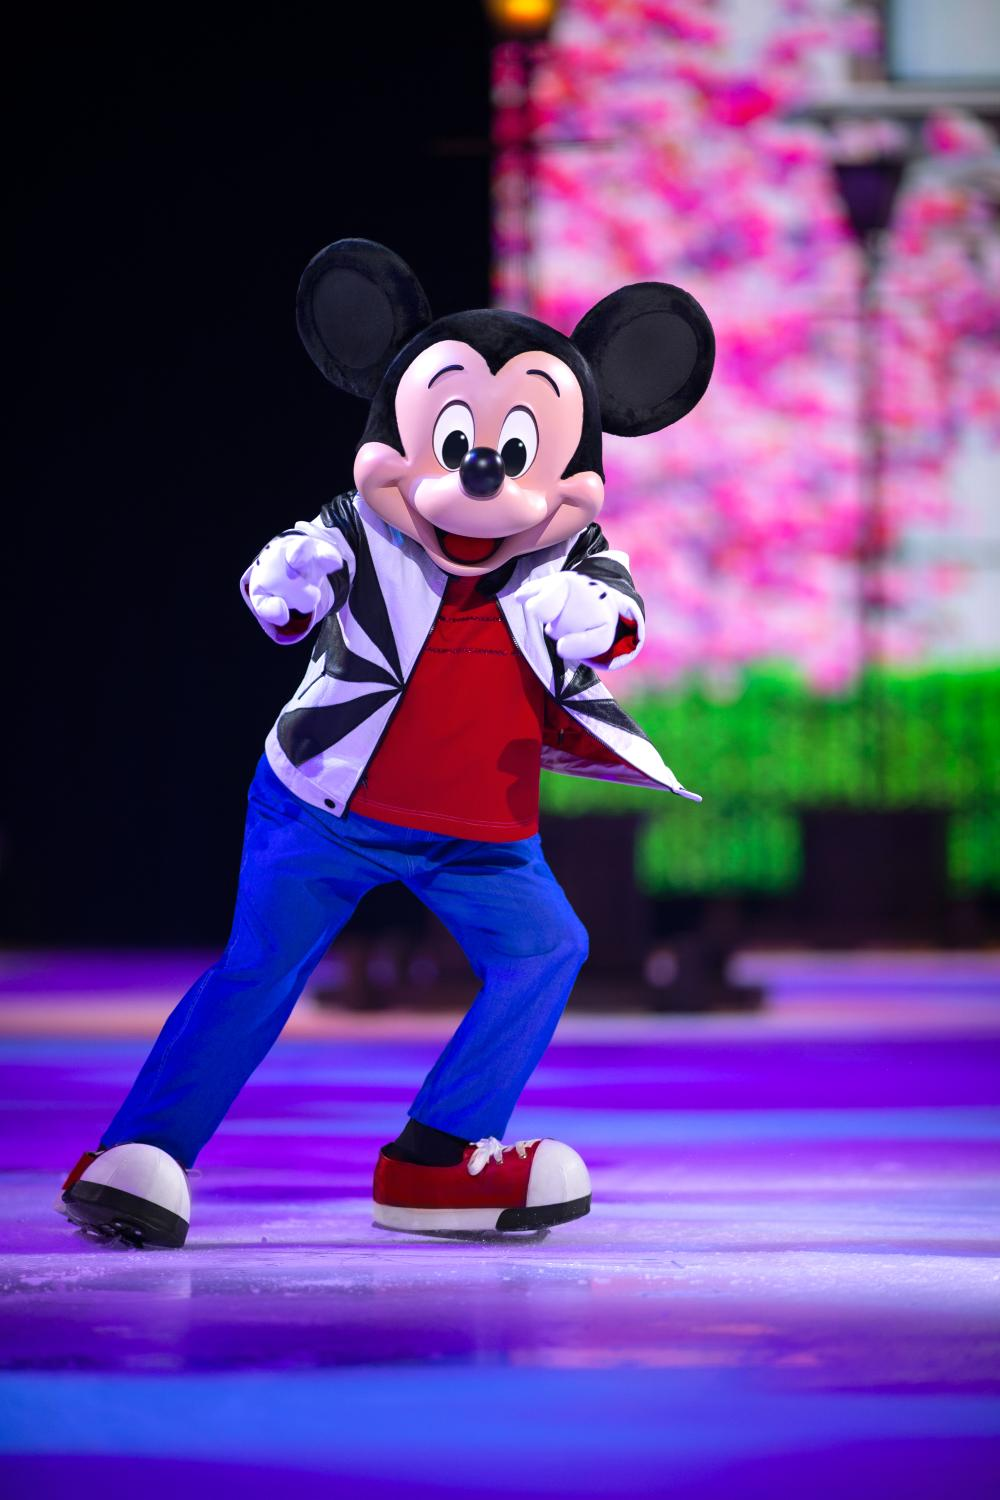 Mickey Mouse dancing on ice